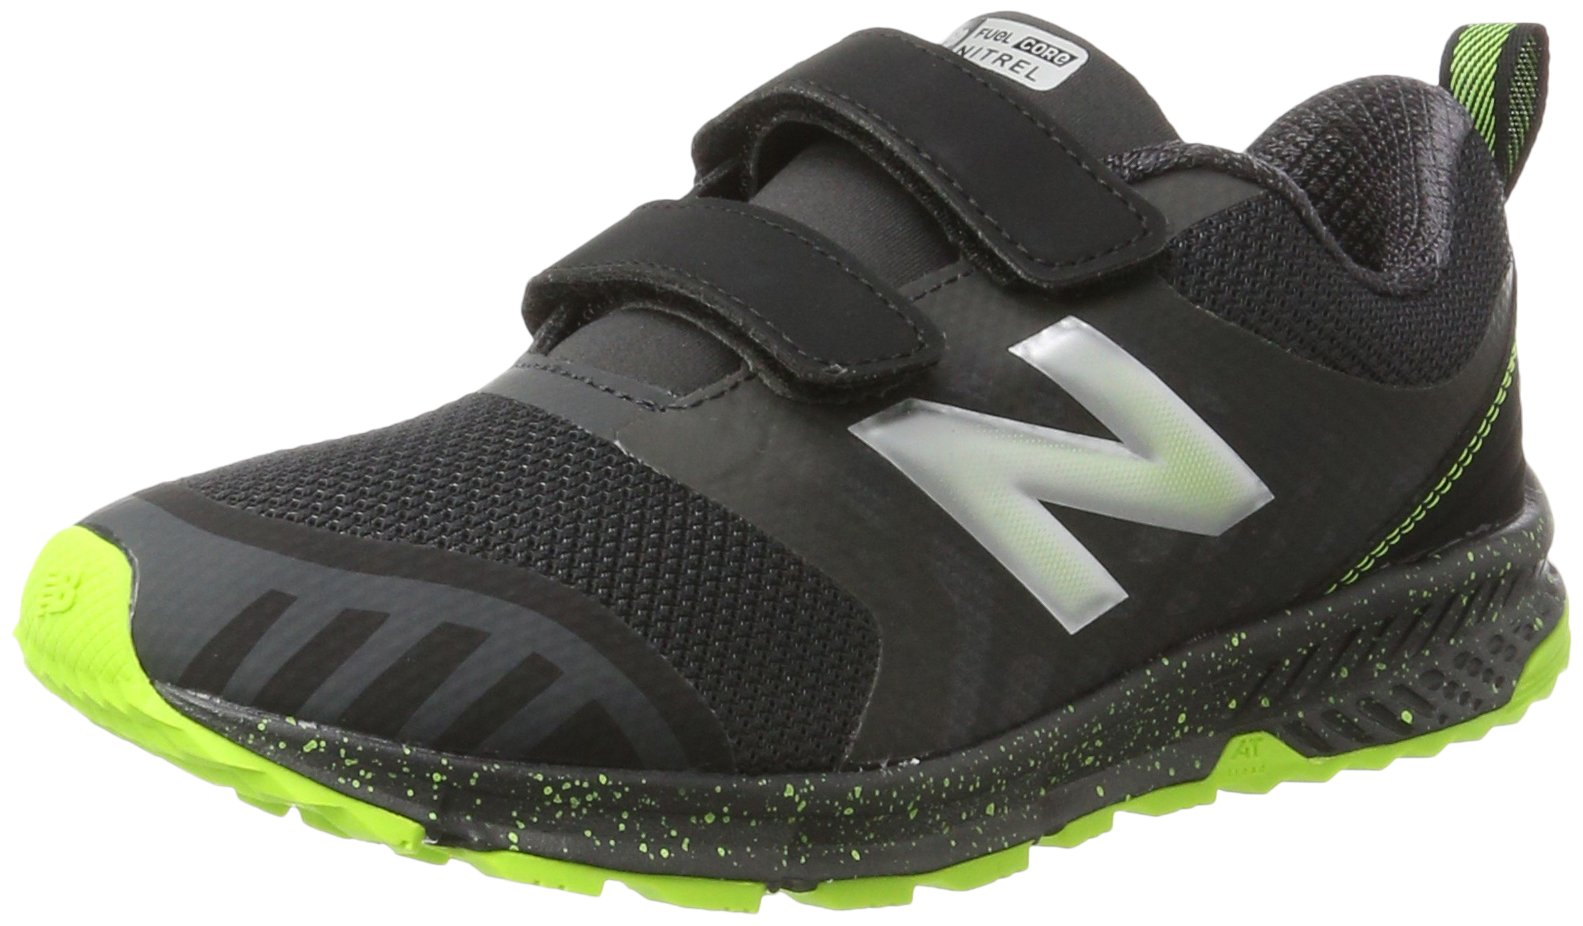 New Balance FuelCore Nitrel Hook and Loop Trail Running Shoe, Grey/Black, 12.5 M US Little Kid